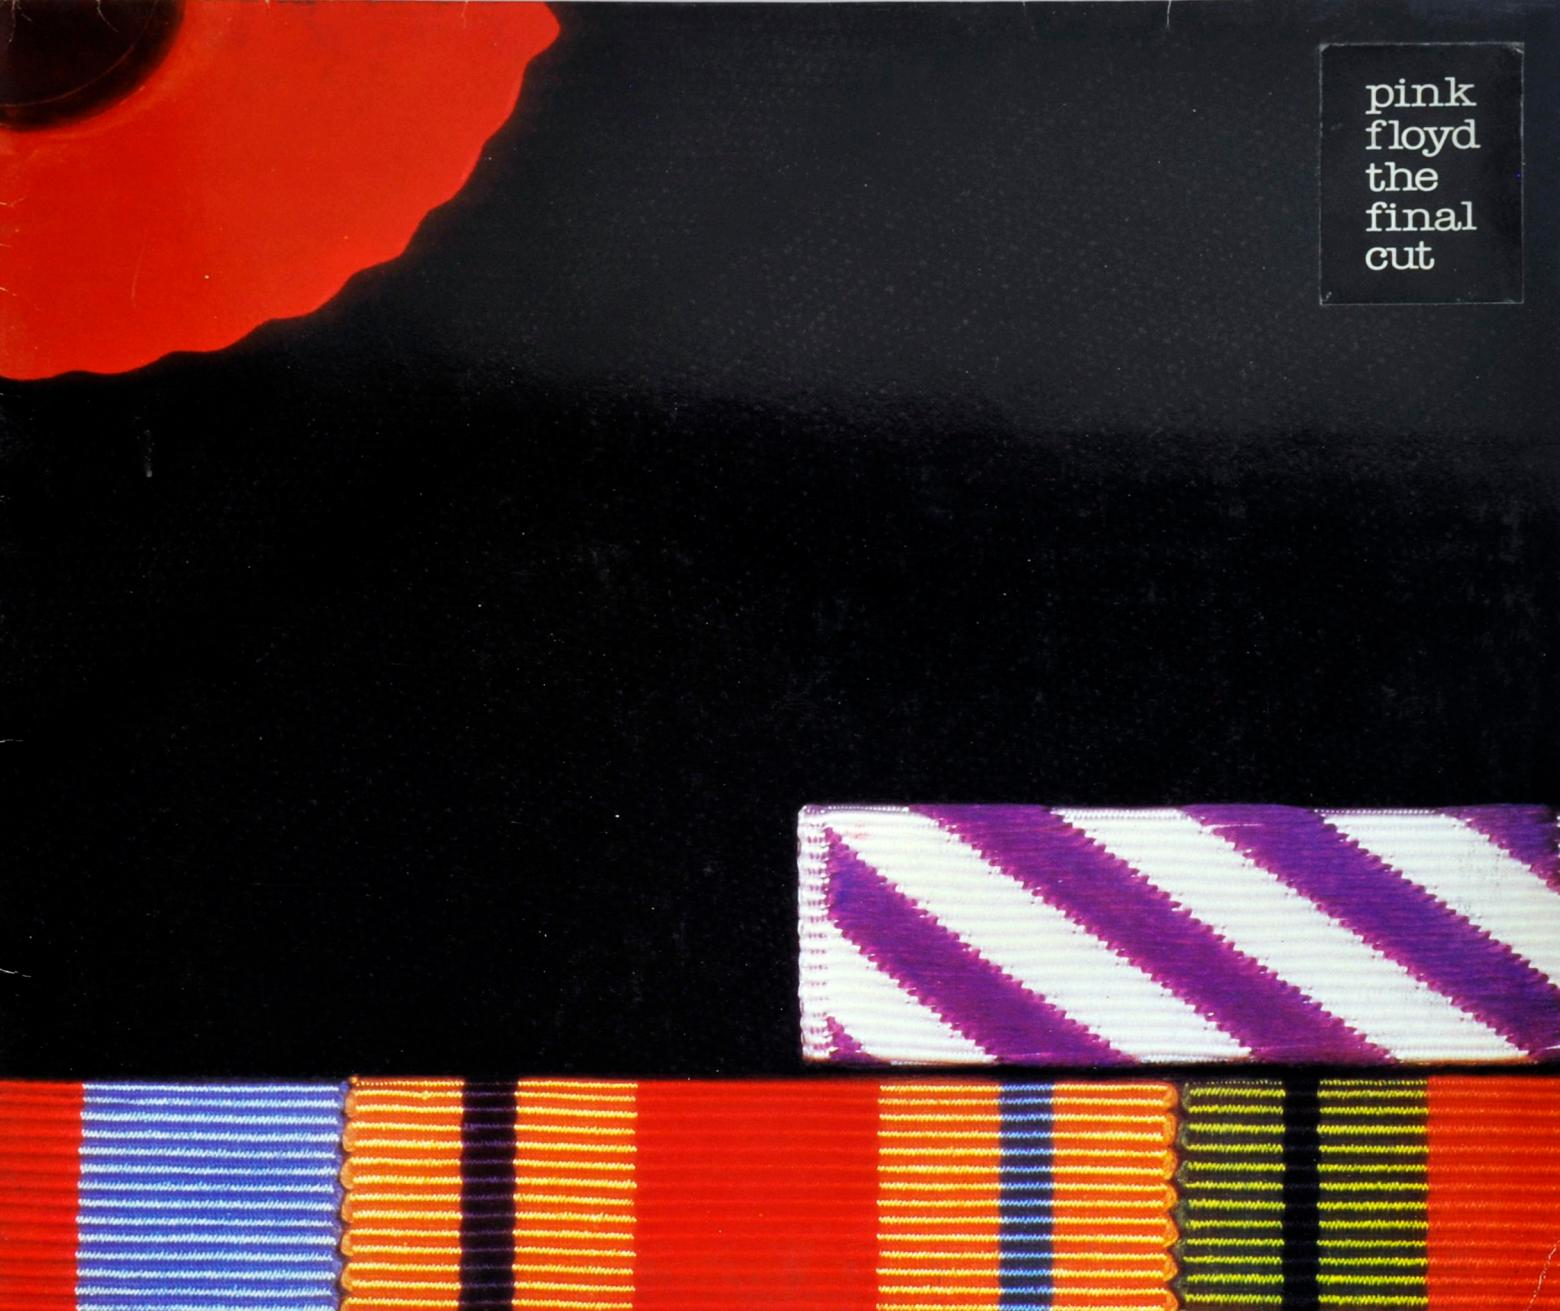 Pink Floyd's The Final Cut Vinyl Cover